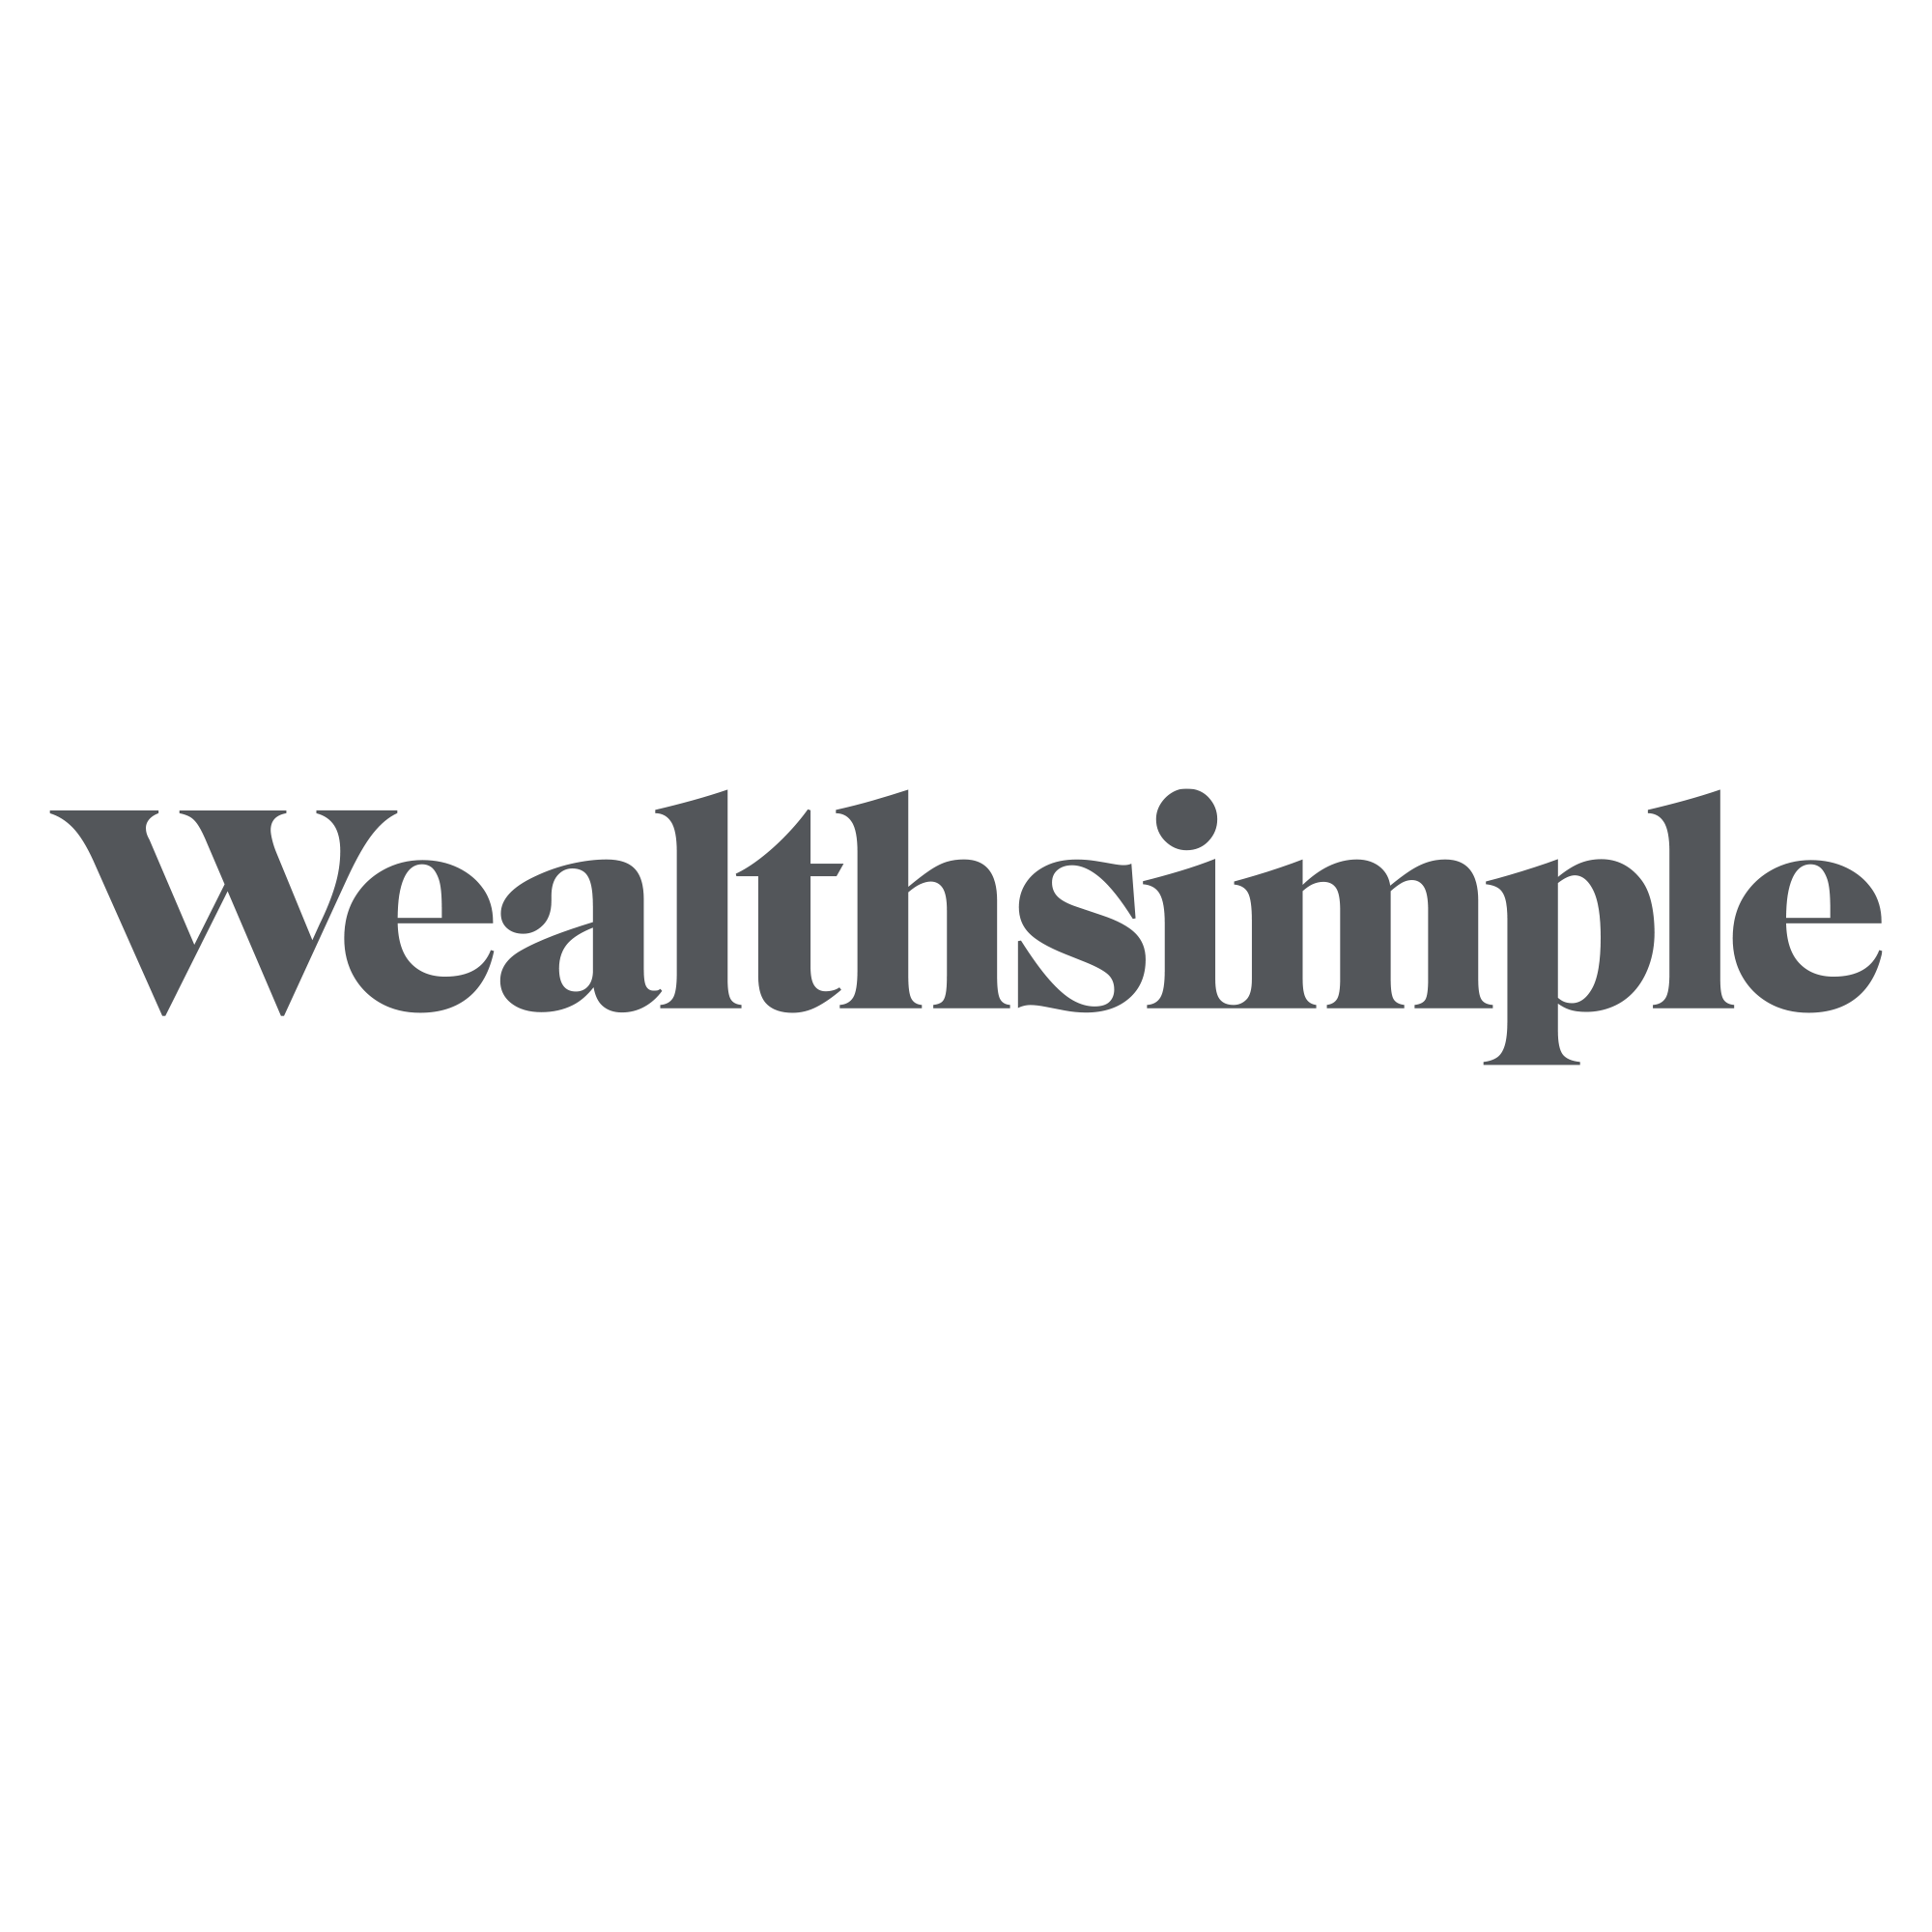 Wealthsimple announces CAD $114 million investment led by